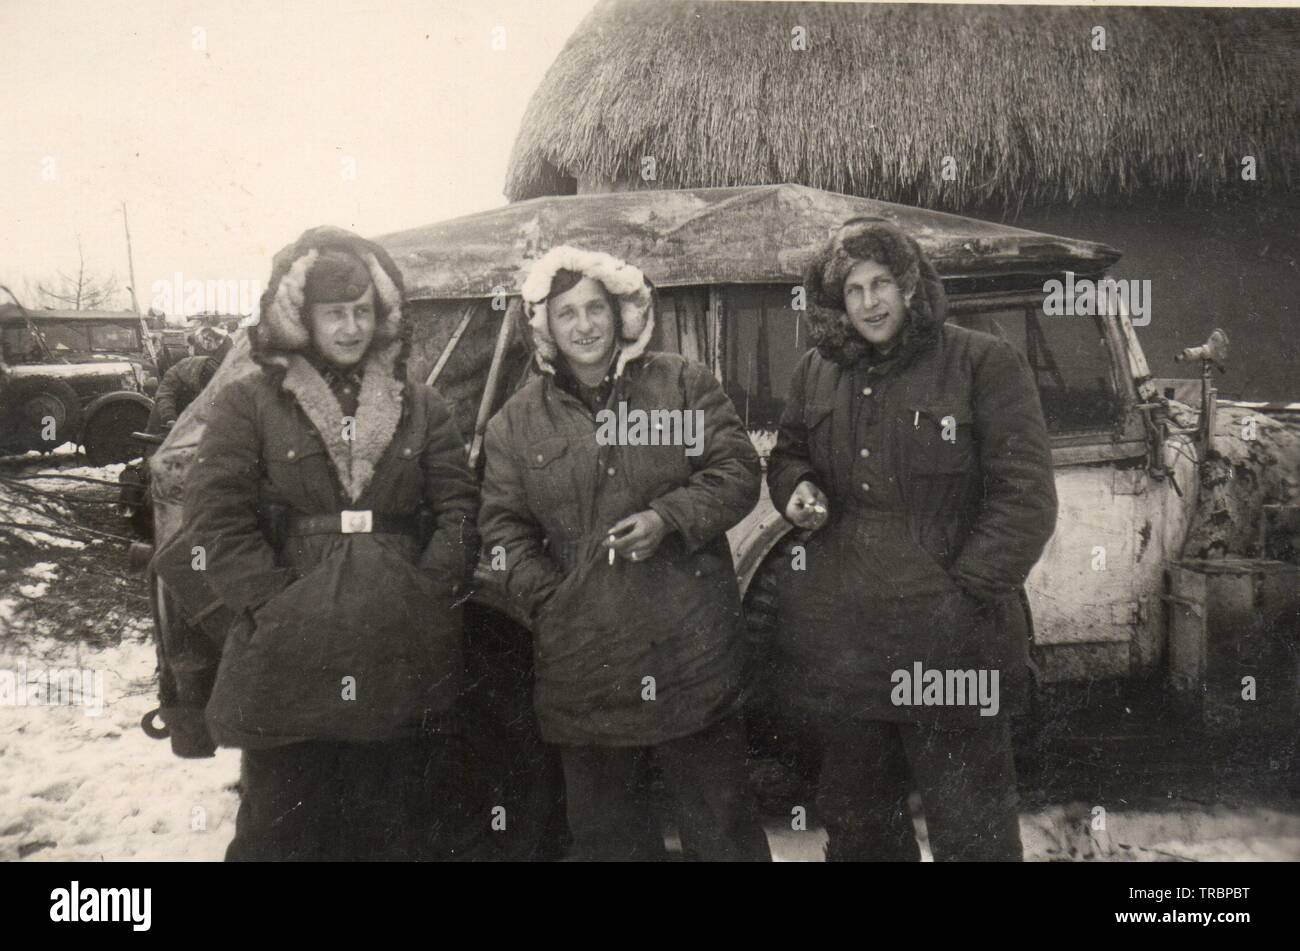 Waffen SS men in Winter Parkas pose in front of their